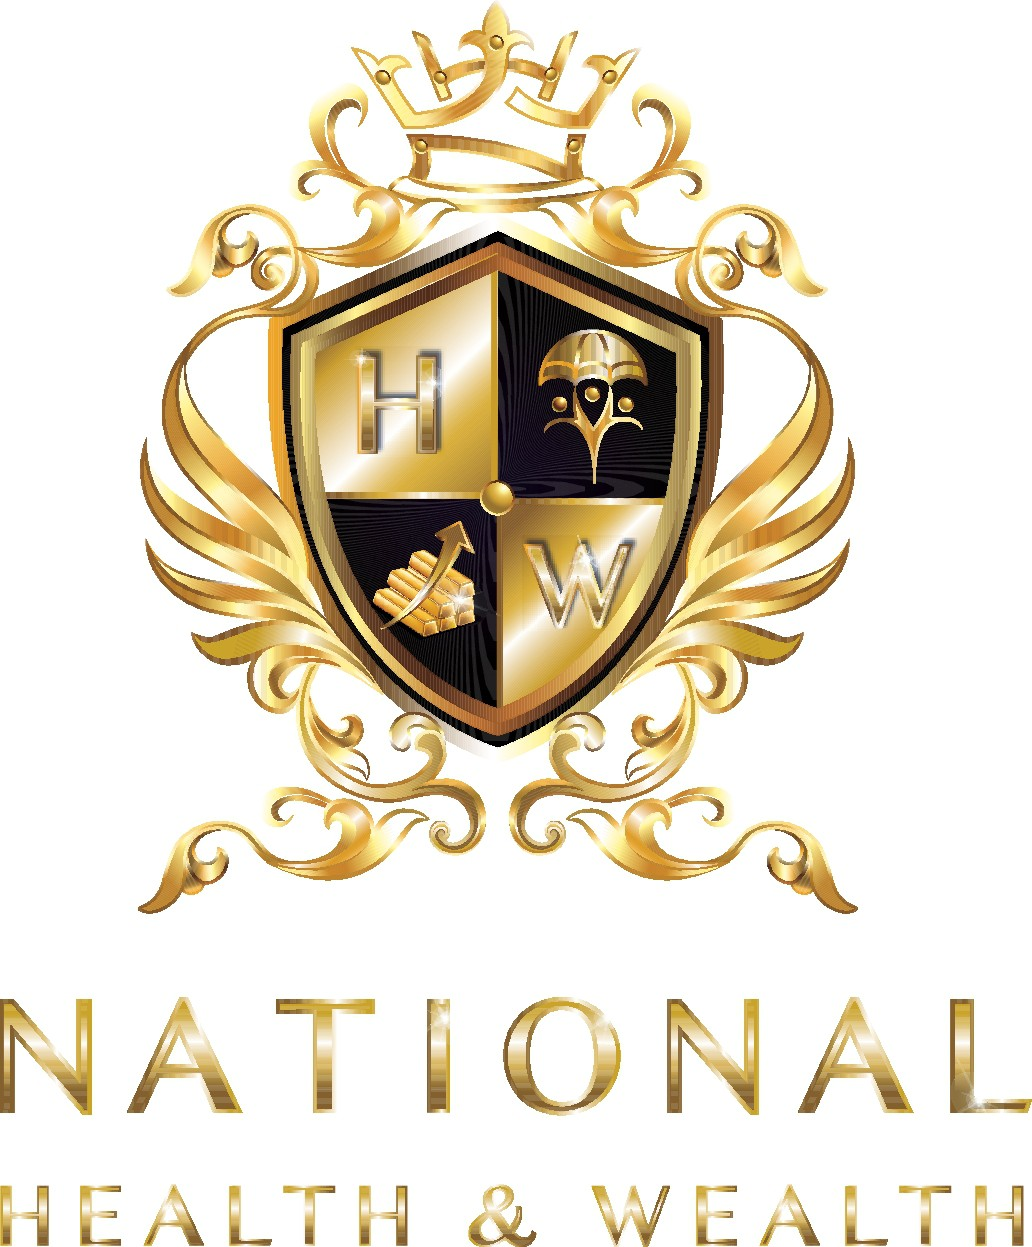 National Health & Wealth needs a distinctive logo, protecting people!